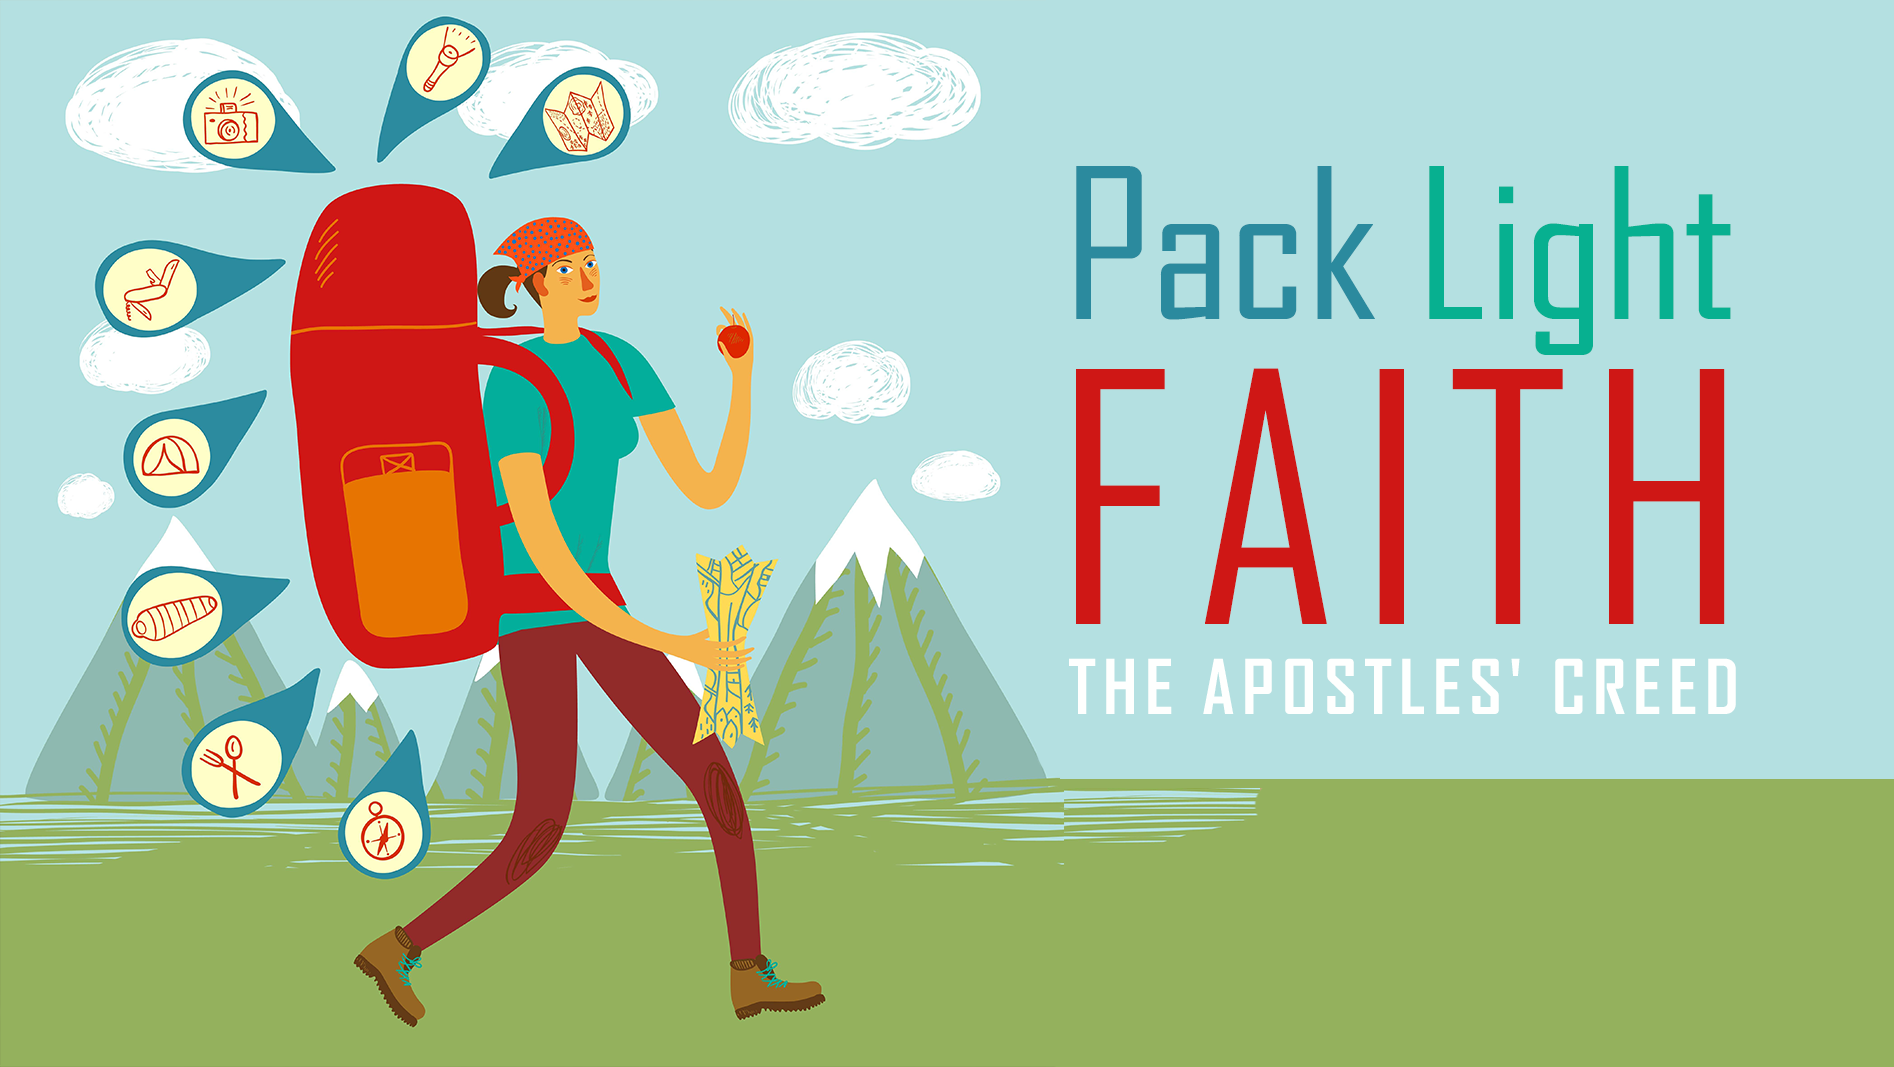 Pack Light Faith